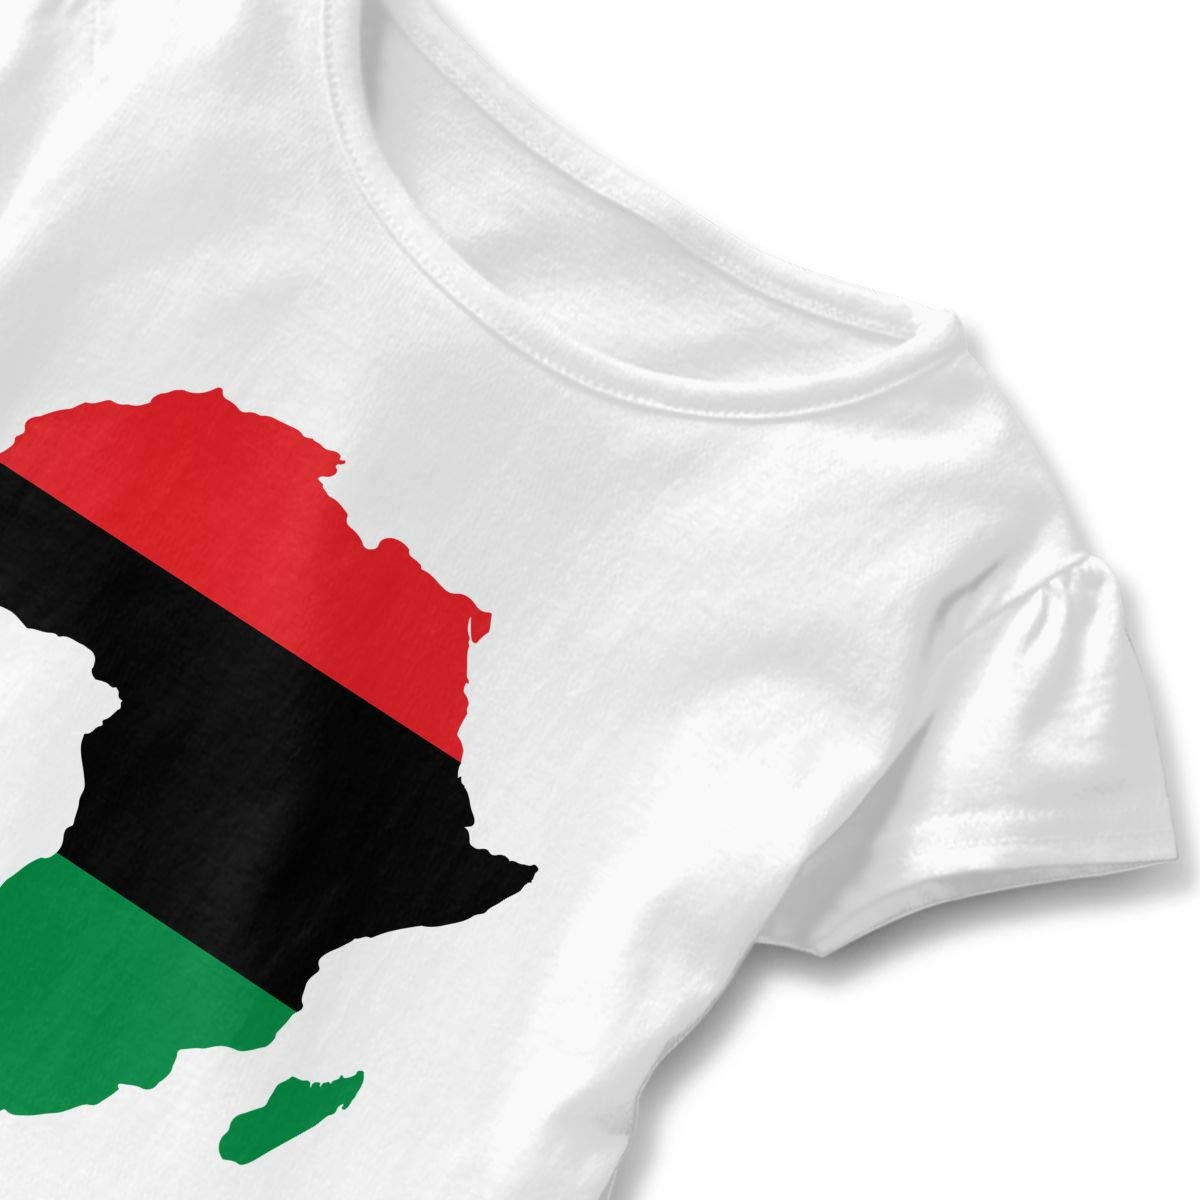 A Flag-Map of The Pan-African Kids Girls Short Sleeve T-Shirts Ruffles Shirt Tee for 2-6T